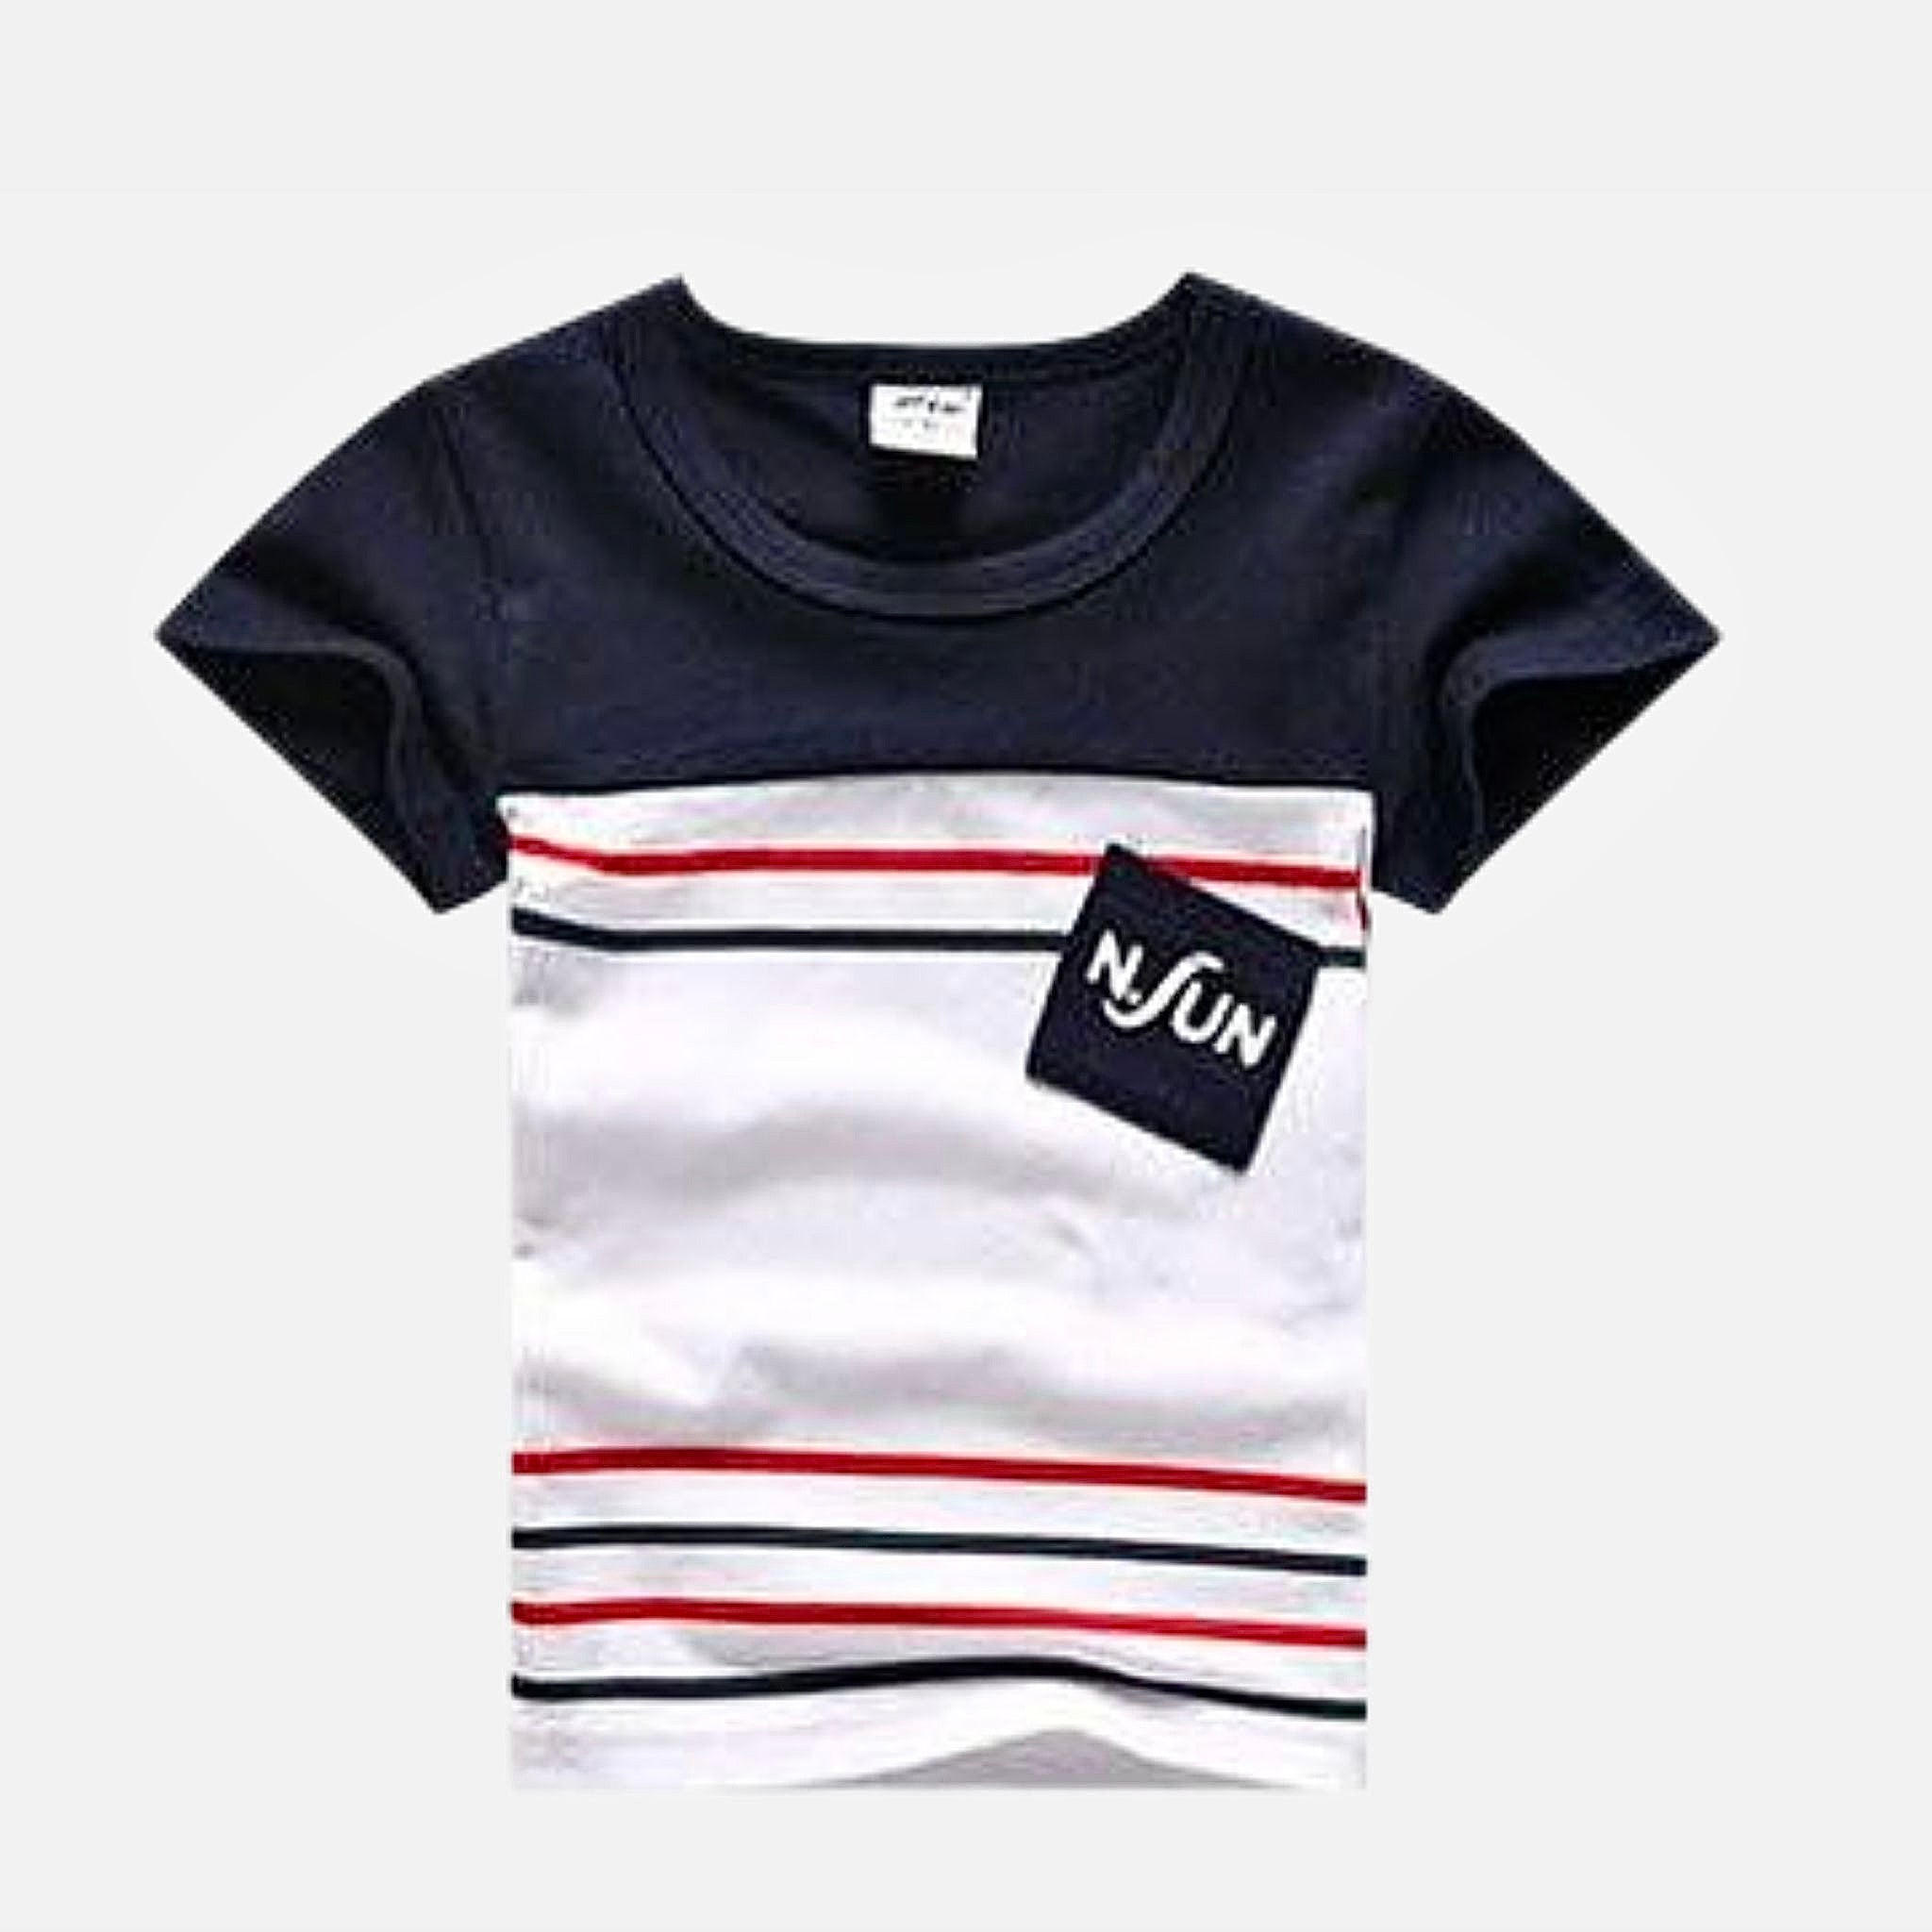 Family Match Outfits   Striped cotton route 96 Navy Blue White T-Shirt Matching clothing